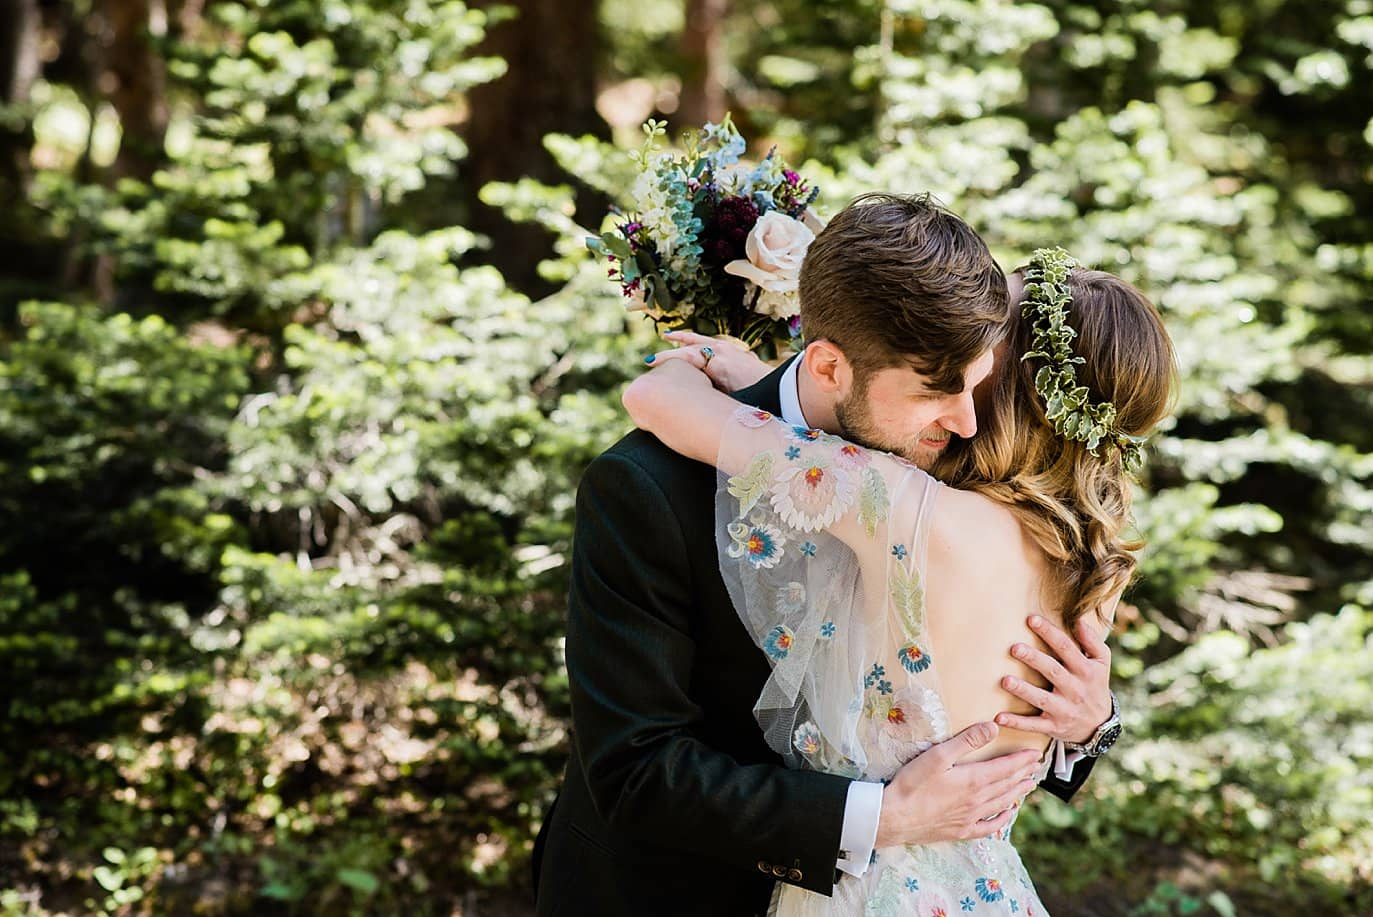 bride and groom embrace after first look in trees at Arapahoe Basin wedding by Breckenridge wedding photographer Jennie Crate